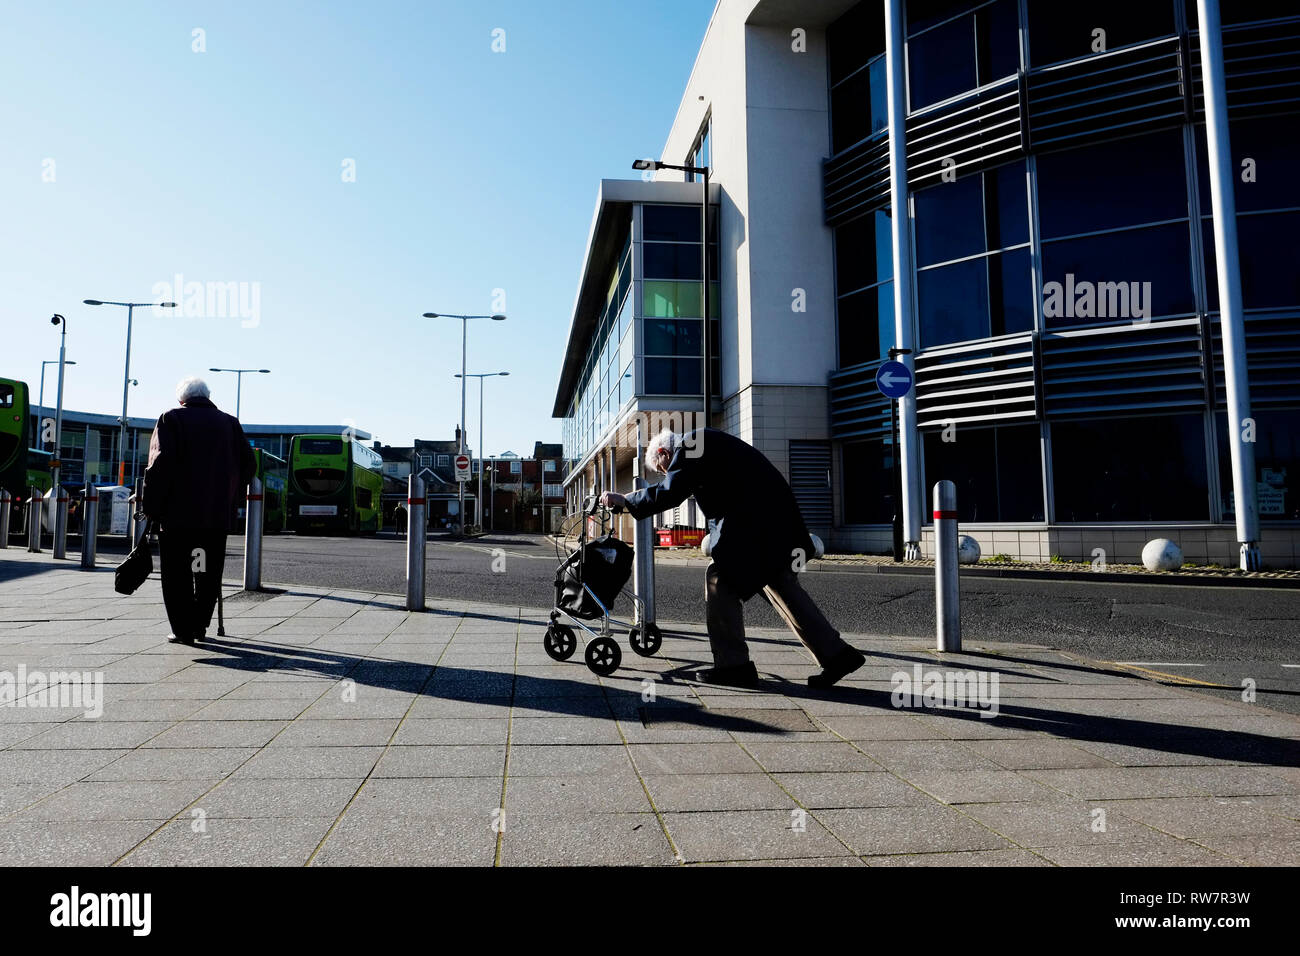 An old man, stooped over, pushes his shopping cart uphill into the central bus station at Newport, Isle of Wight, UK. - Stock Image